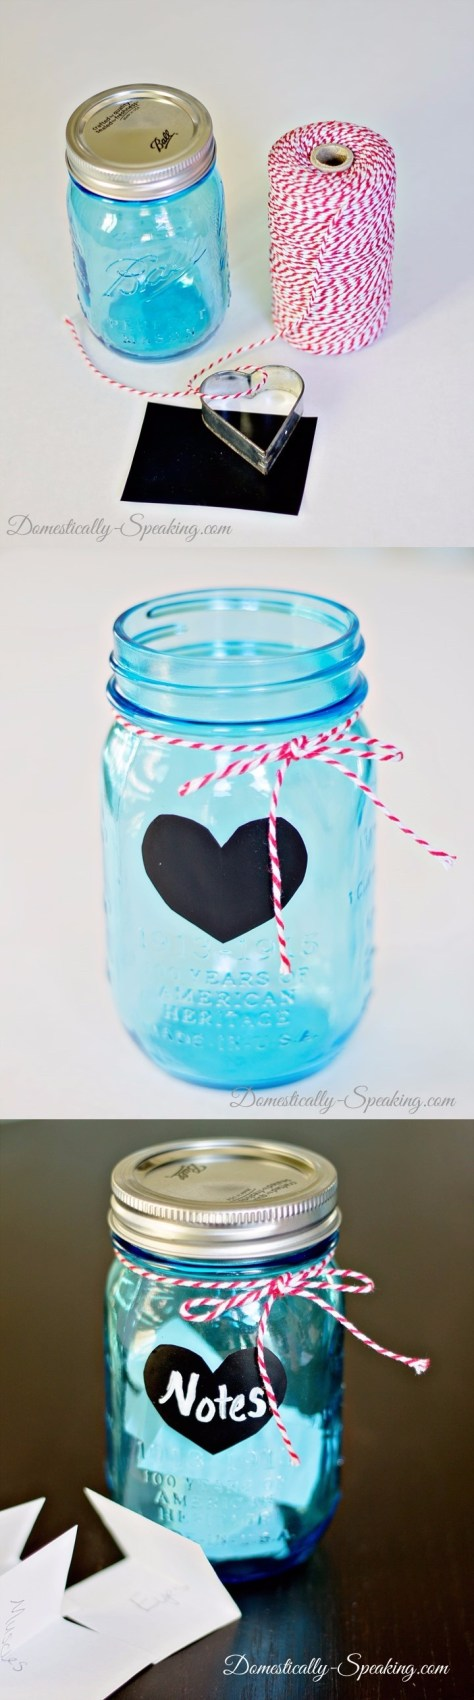 Love Notes Jar Tutorial